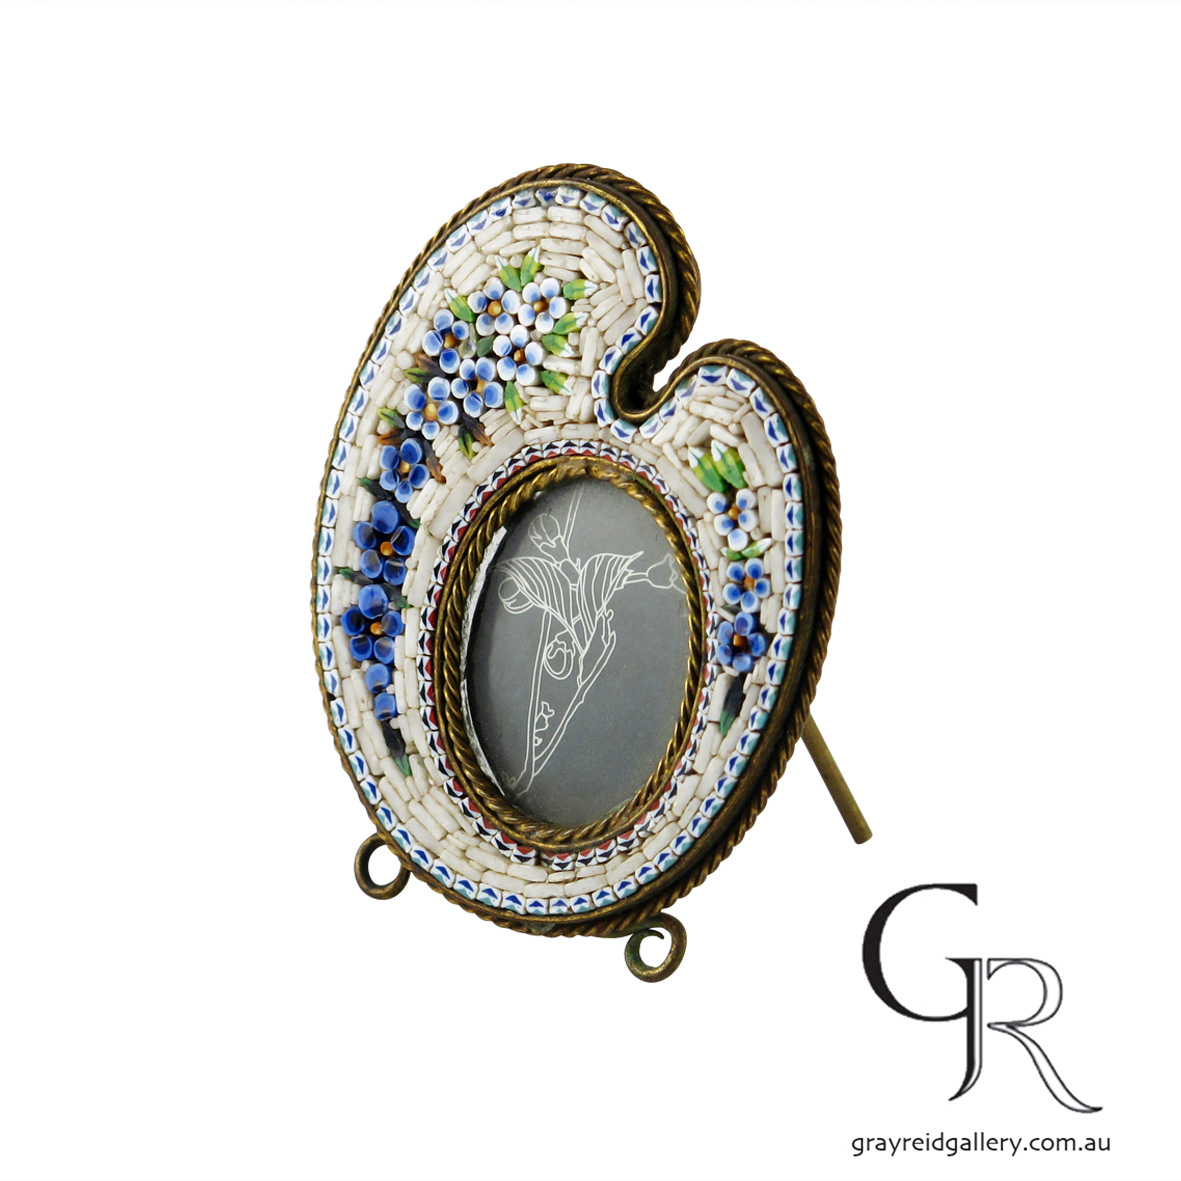 antiques and collectables melbourne micro mosaic picture frame Gray Reid Gallery 12.jpg